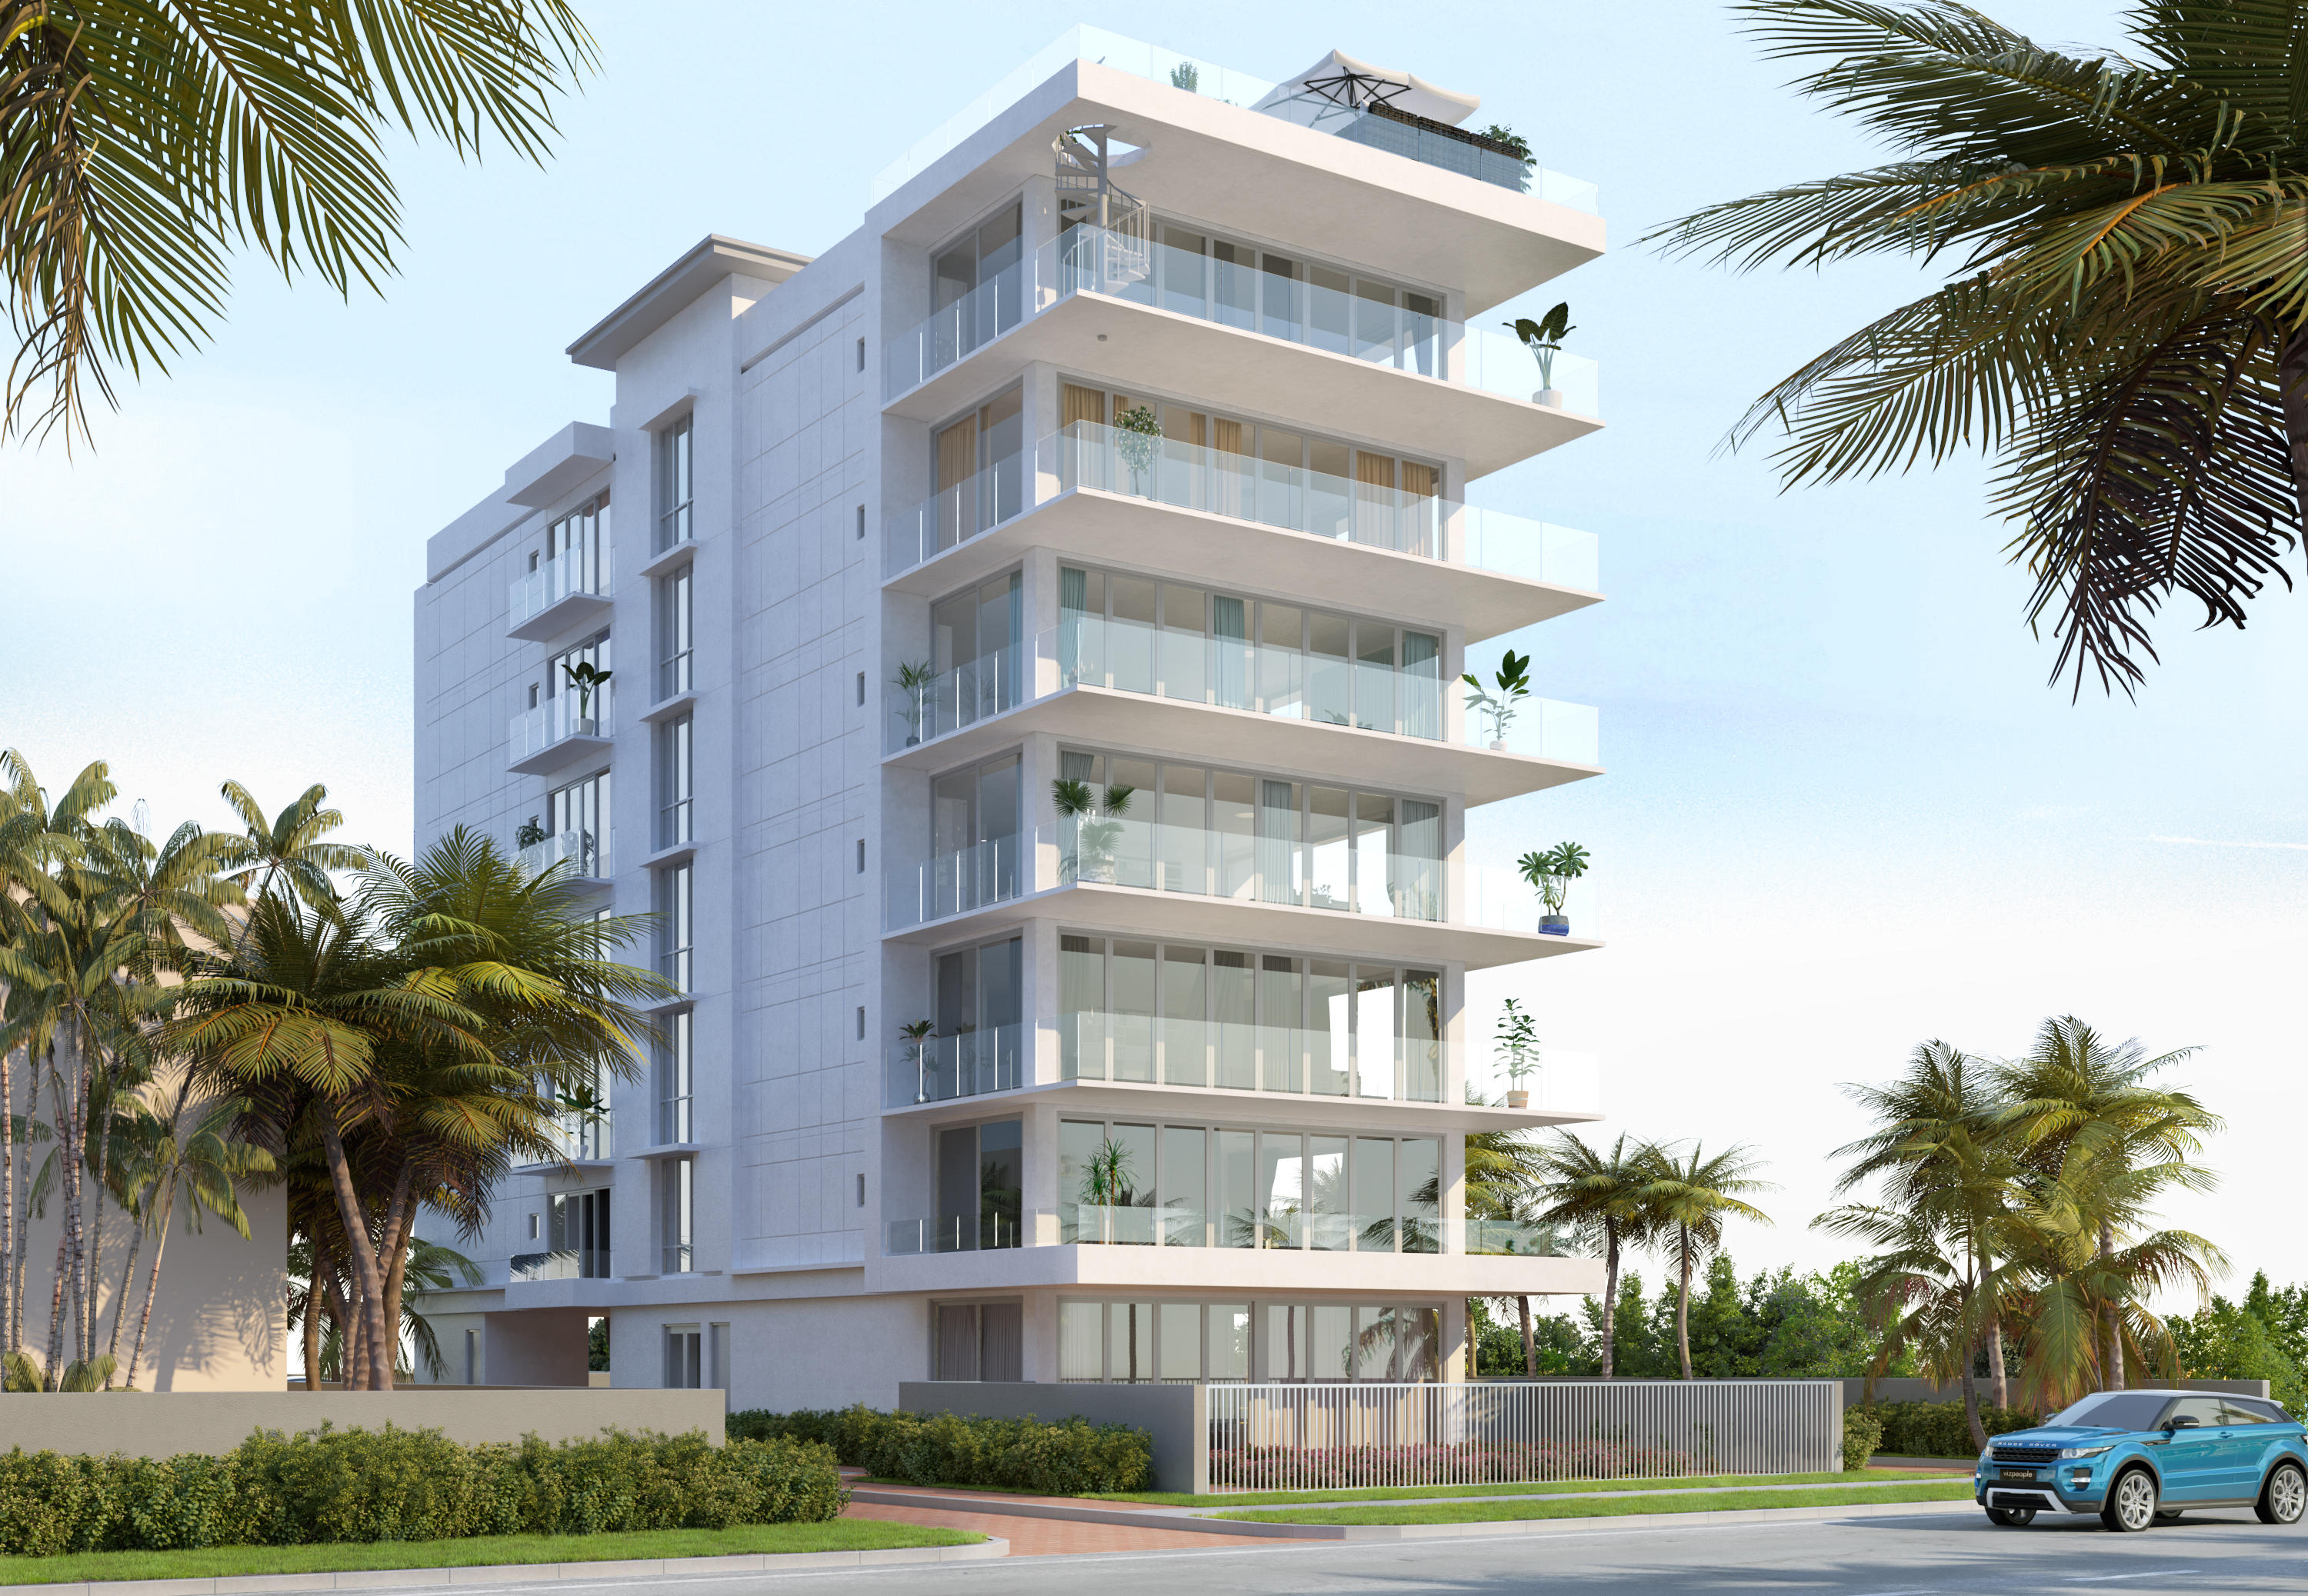 Appartement à vendre en 3611 S Flagler Drive Th, West Palm Beach, Floride ,33405  , États-Unis